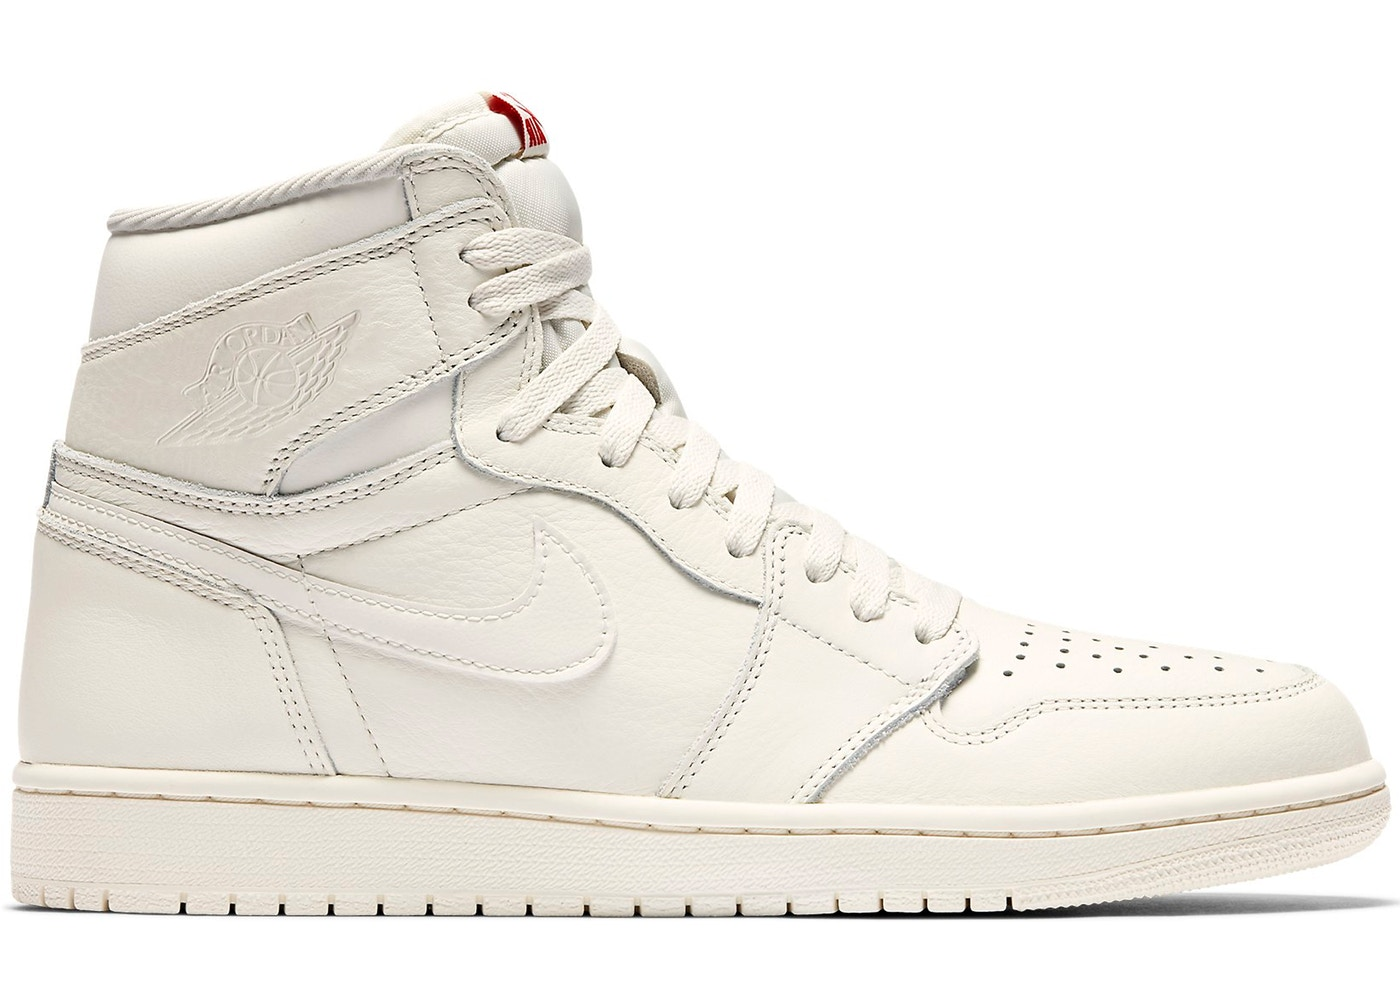 f9caa91275e974 Jordan 1 Retro High OG Sail - 555088-114